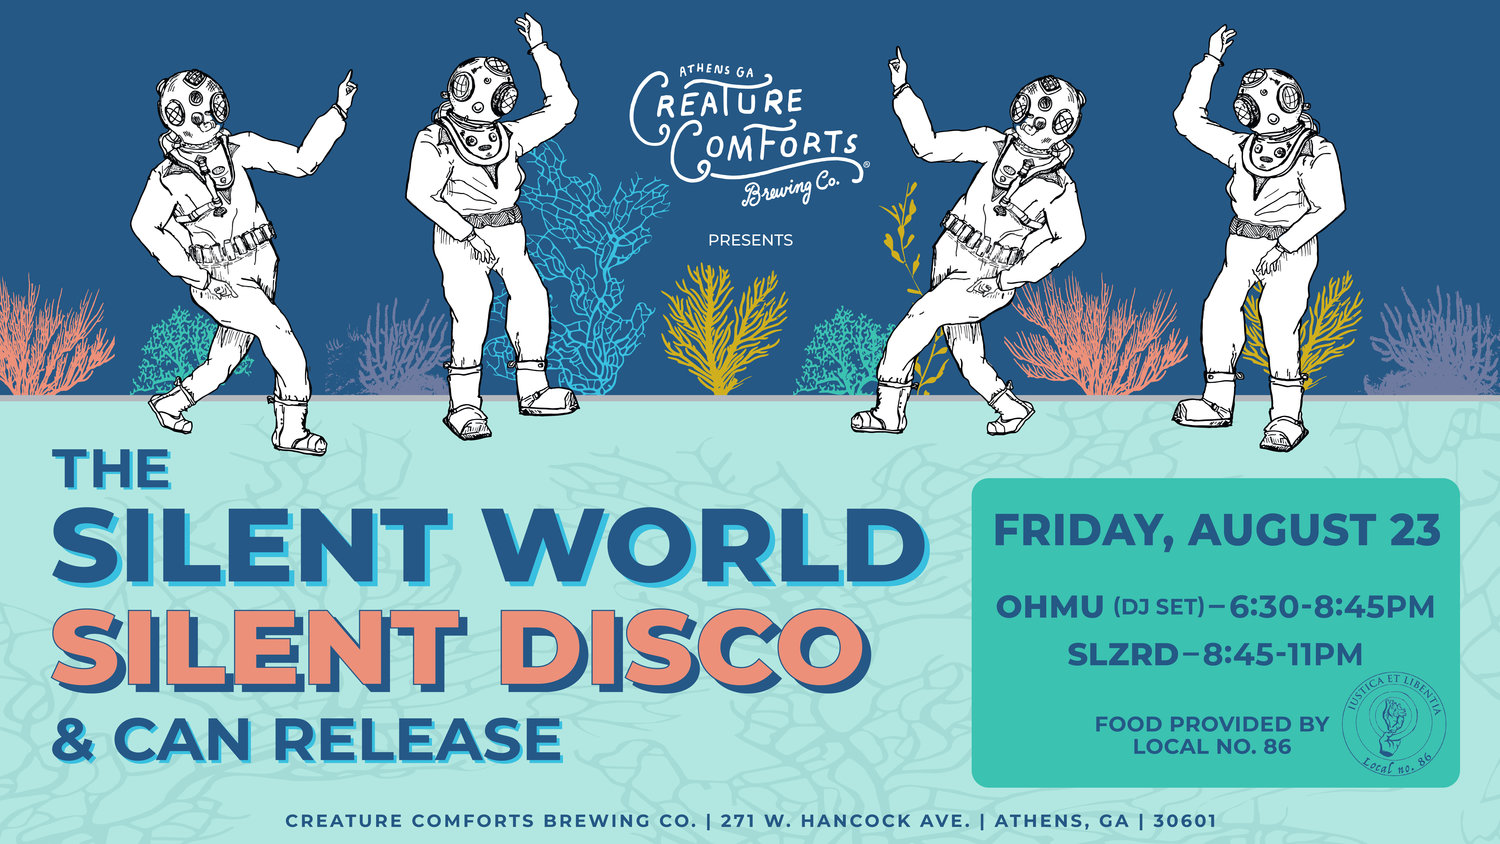 The Silent World Silent Disco Creature Comforts Brewing Co